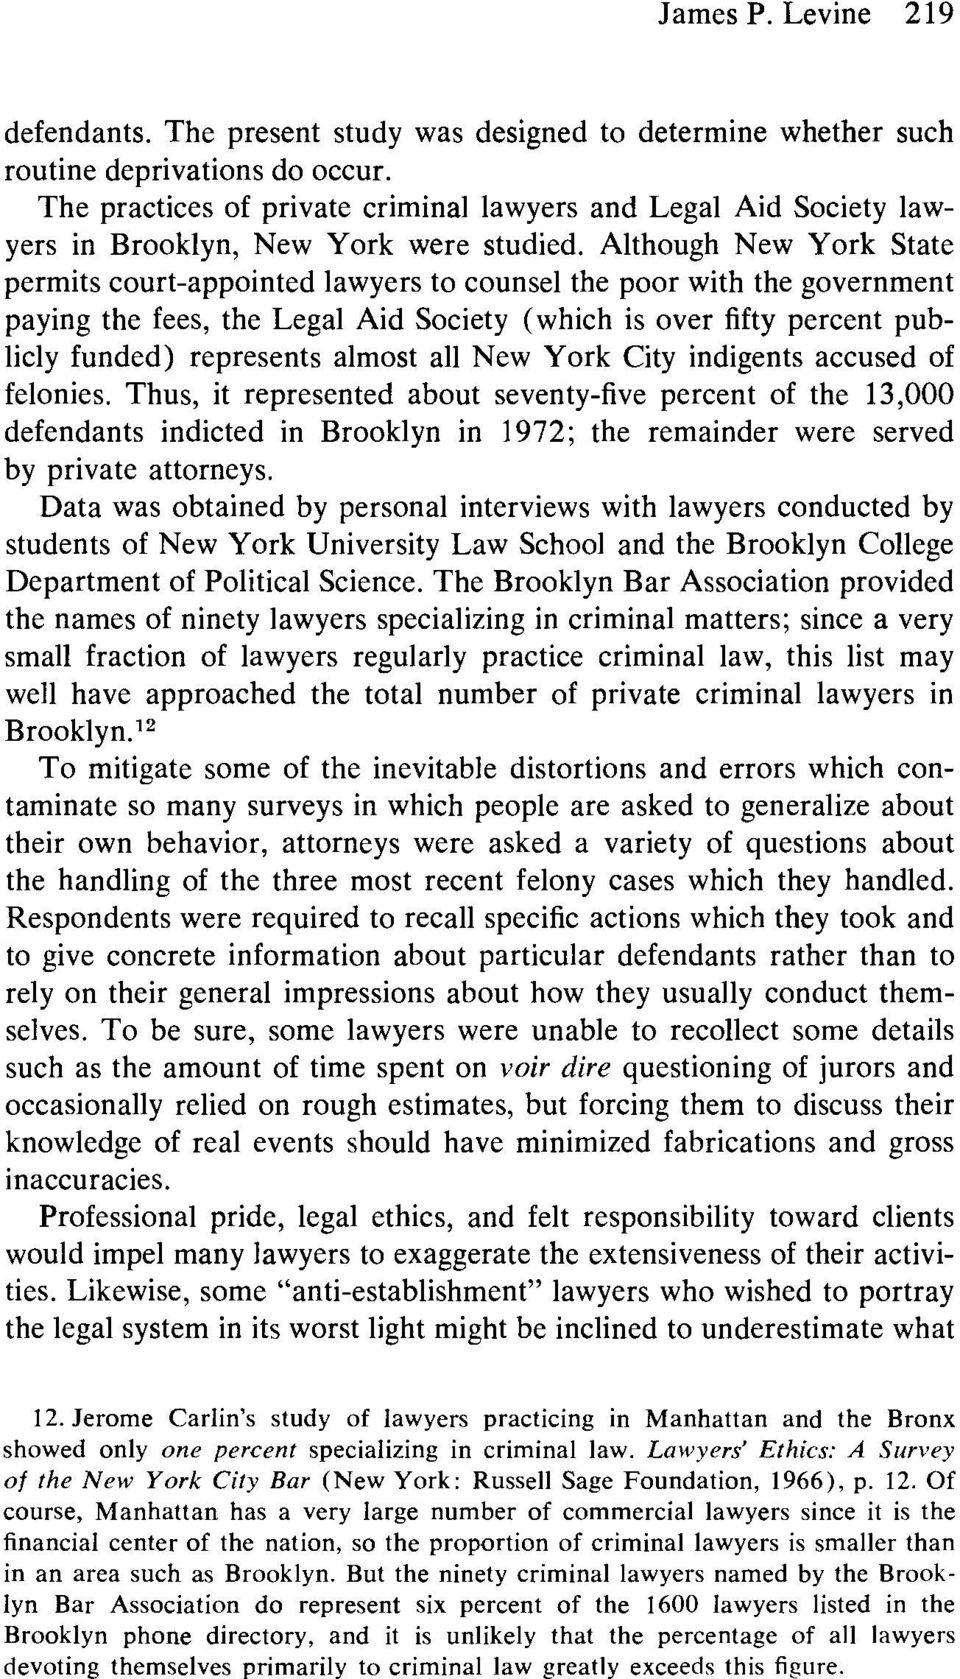 Although New York State permits court-appointed lawyers to counsel the poor with the government paying the fees, the Legal Aid Society (which is over fifty percent publicly funded) represents almost